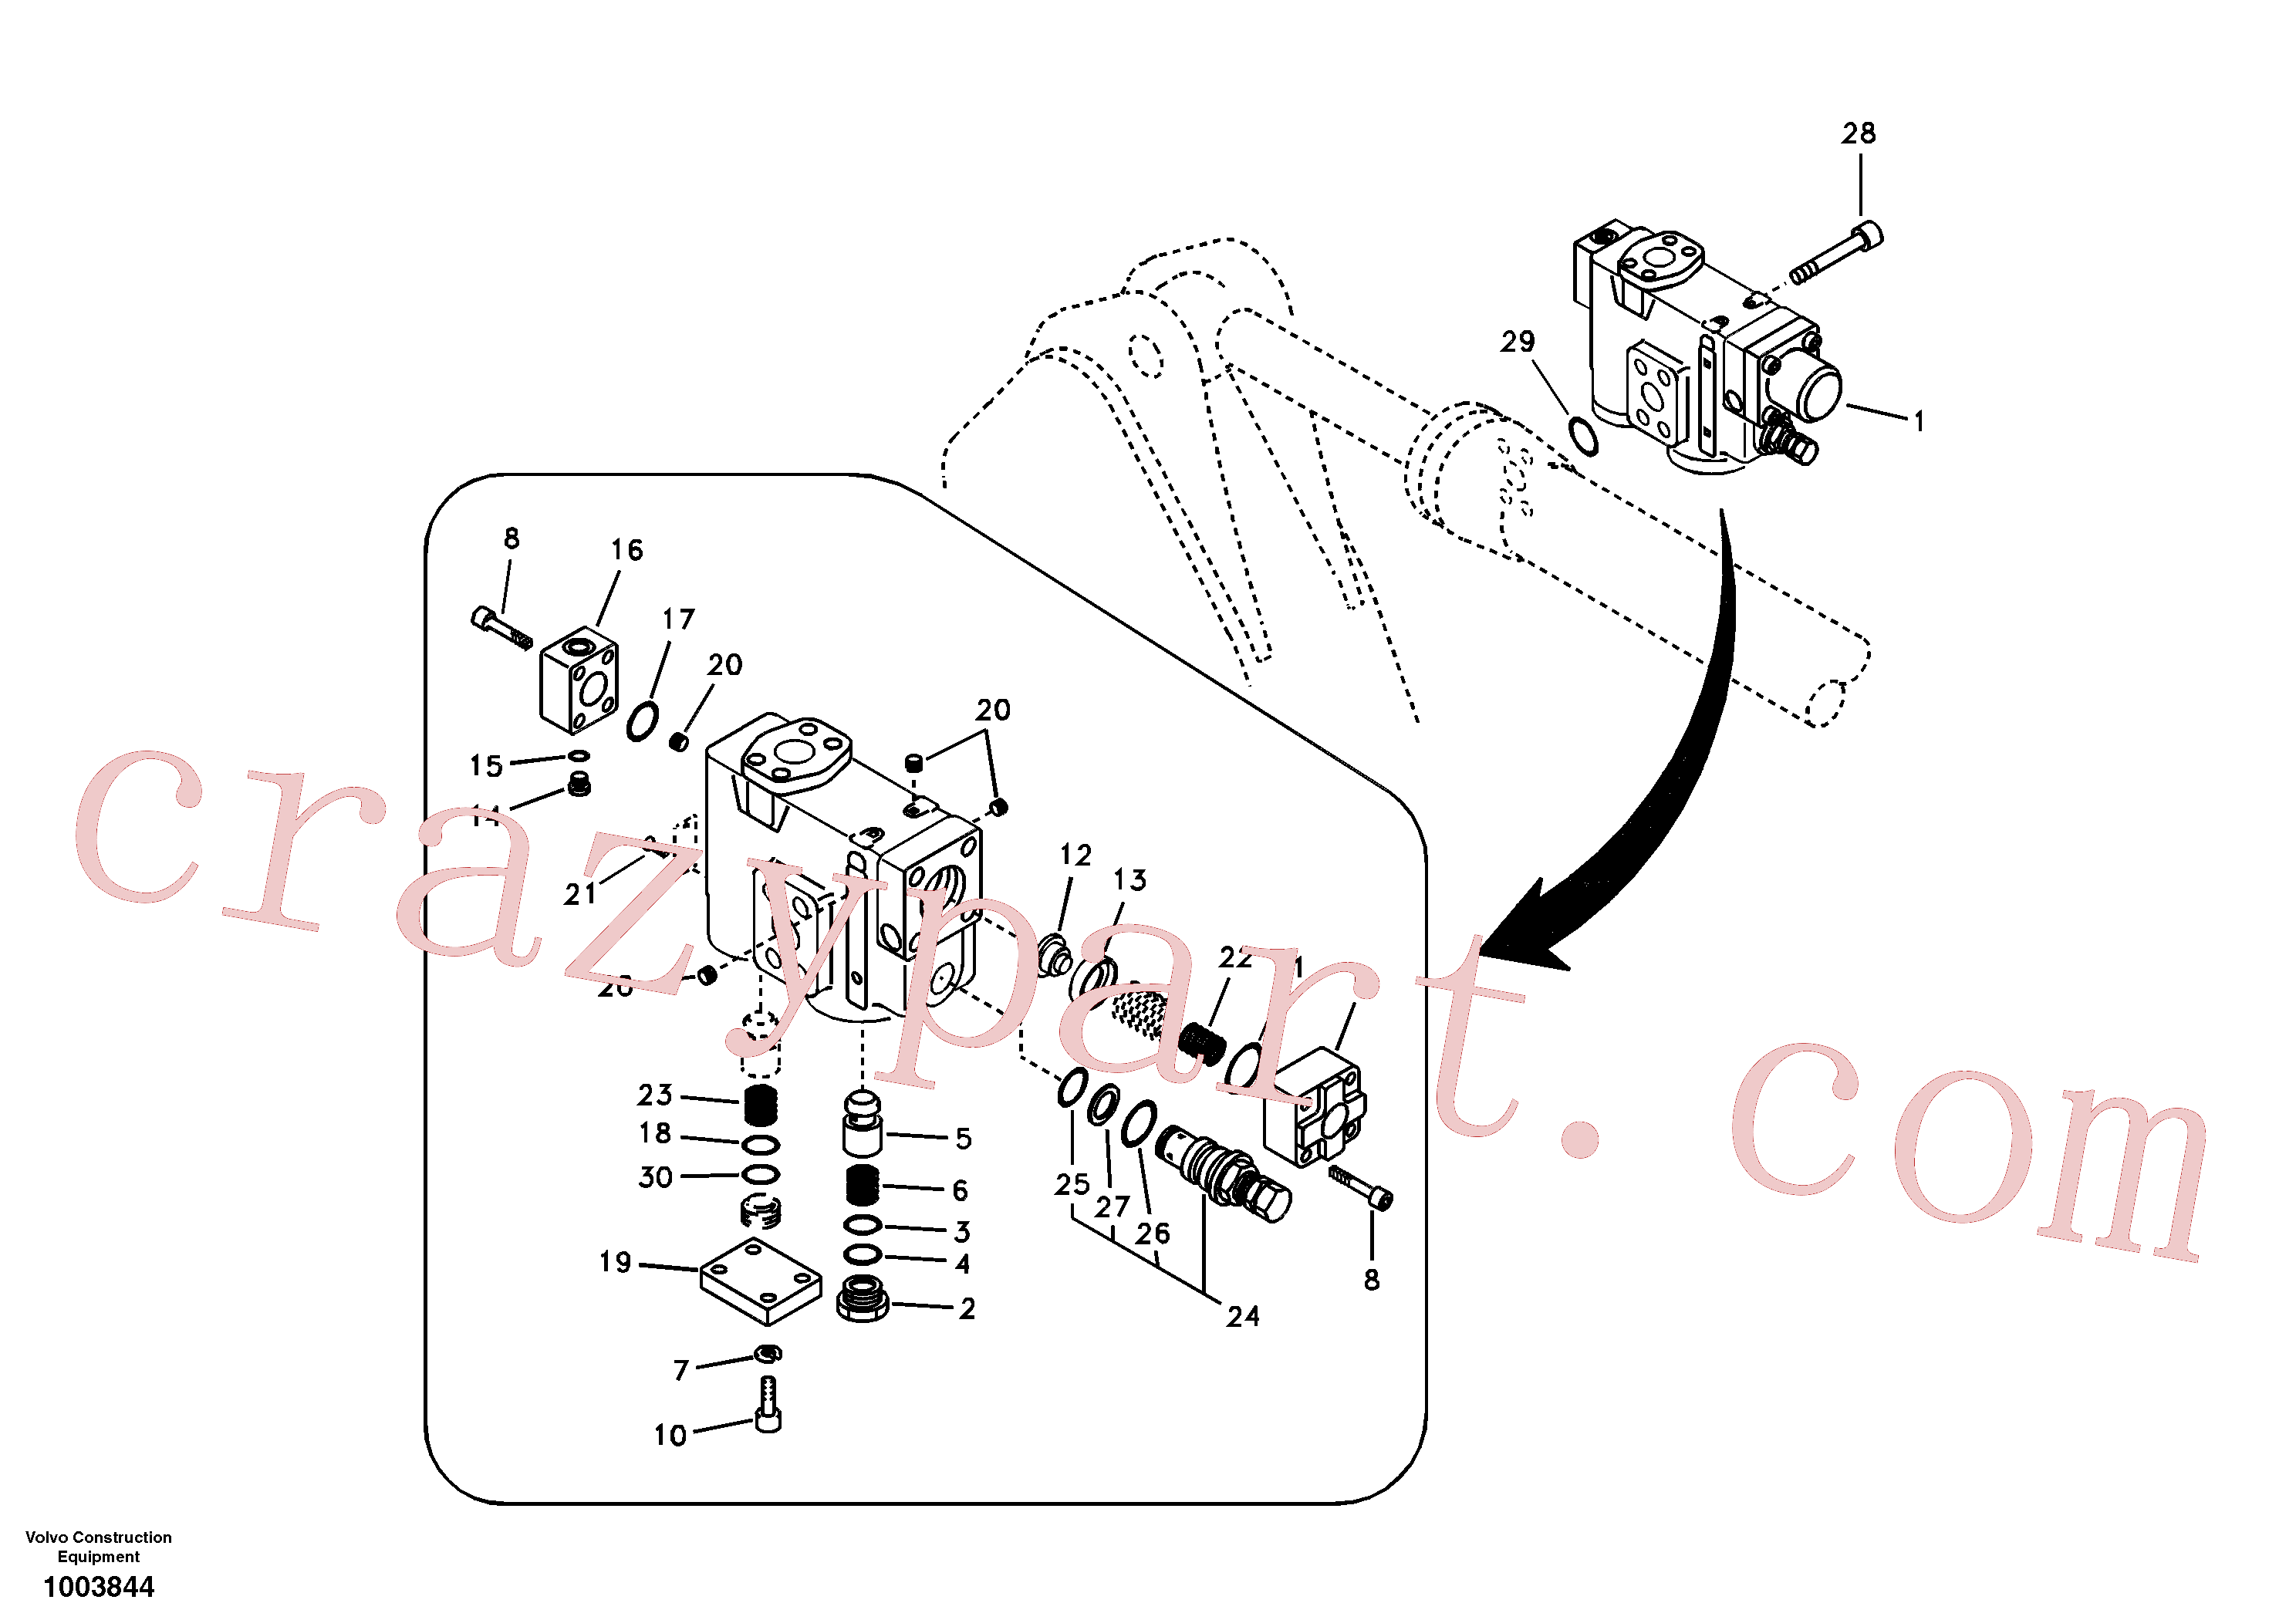 VOE14519774 for Volvo Working hydraulic, dipper arm rupture valve mount.(1003844 assembly)